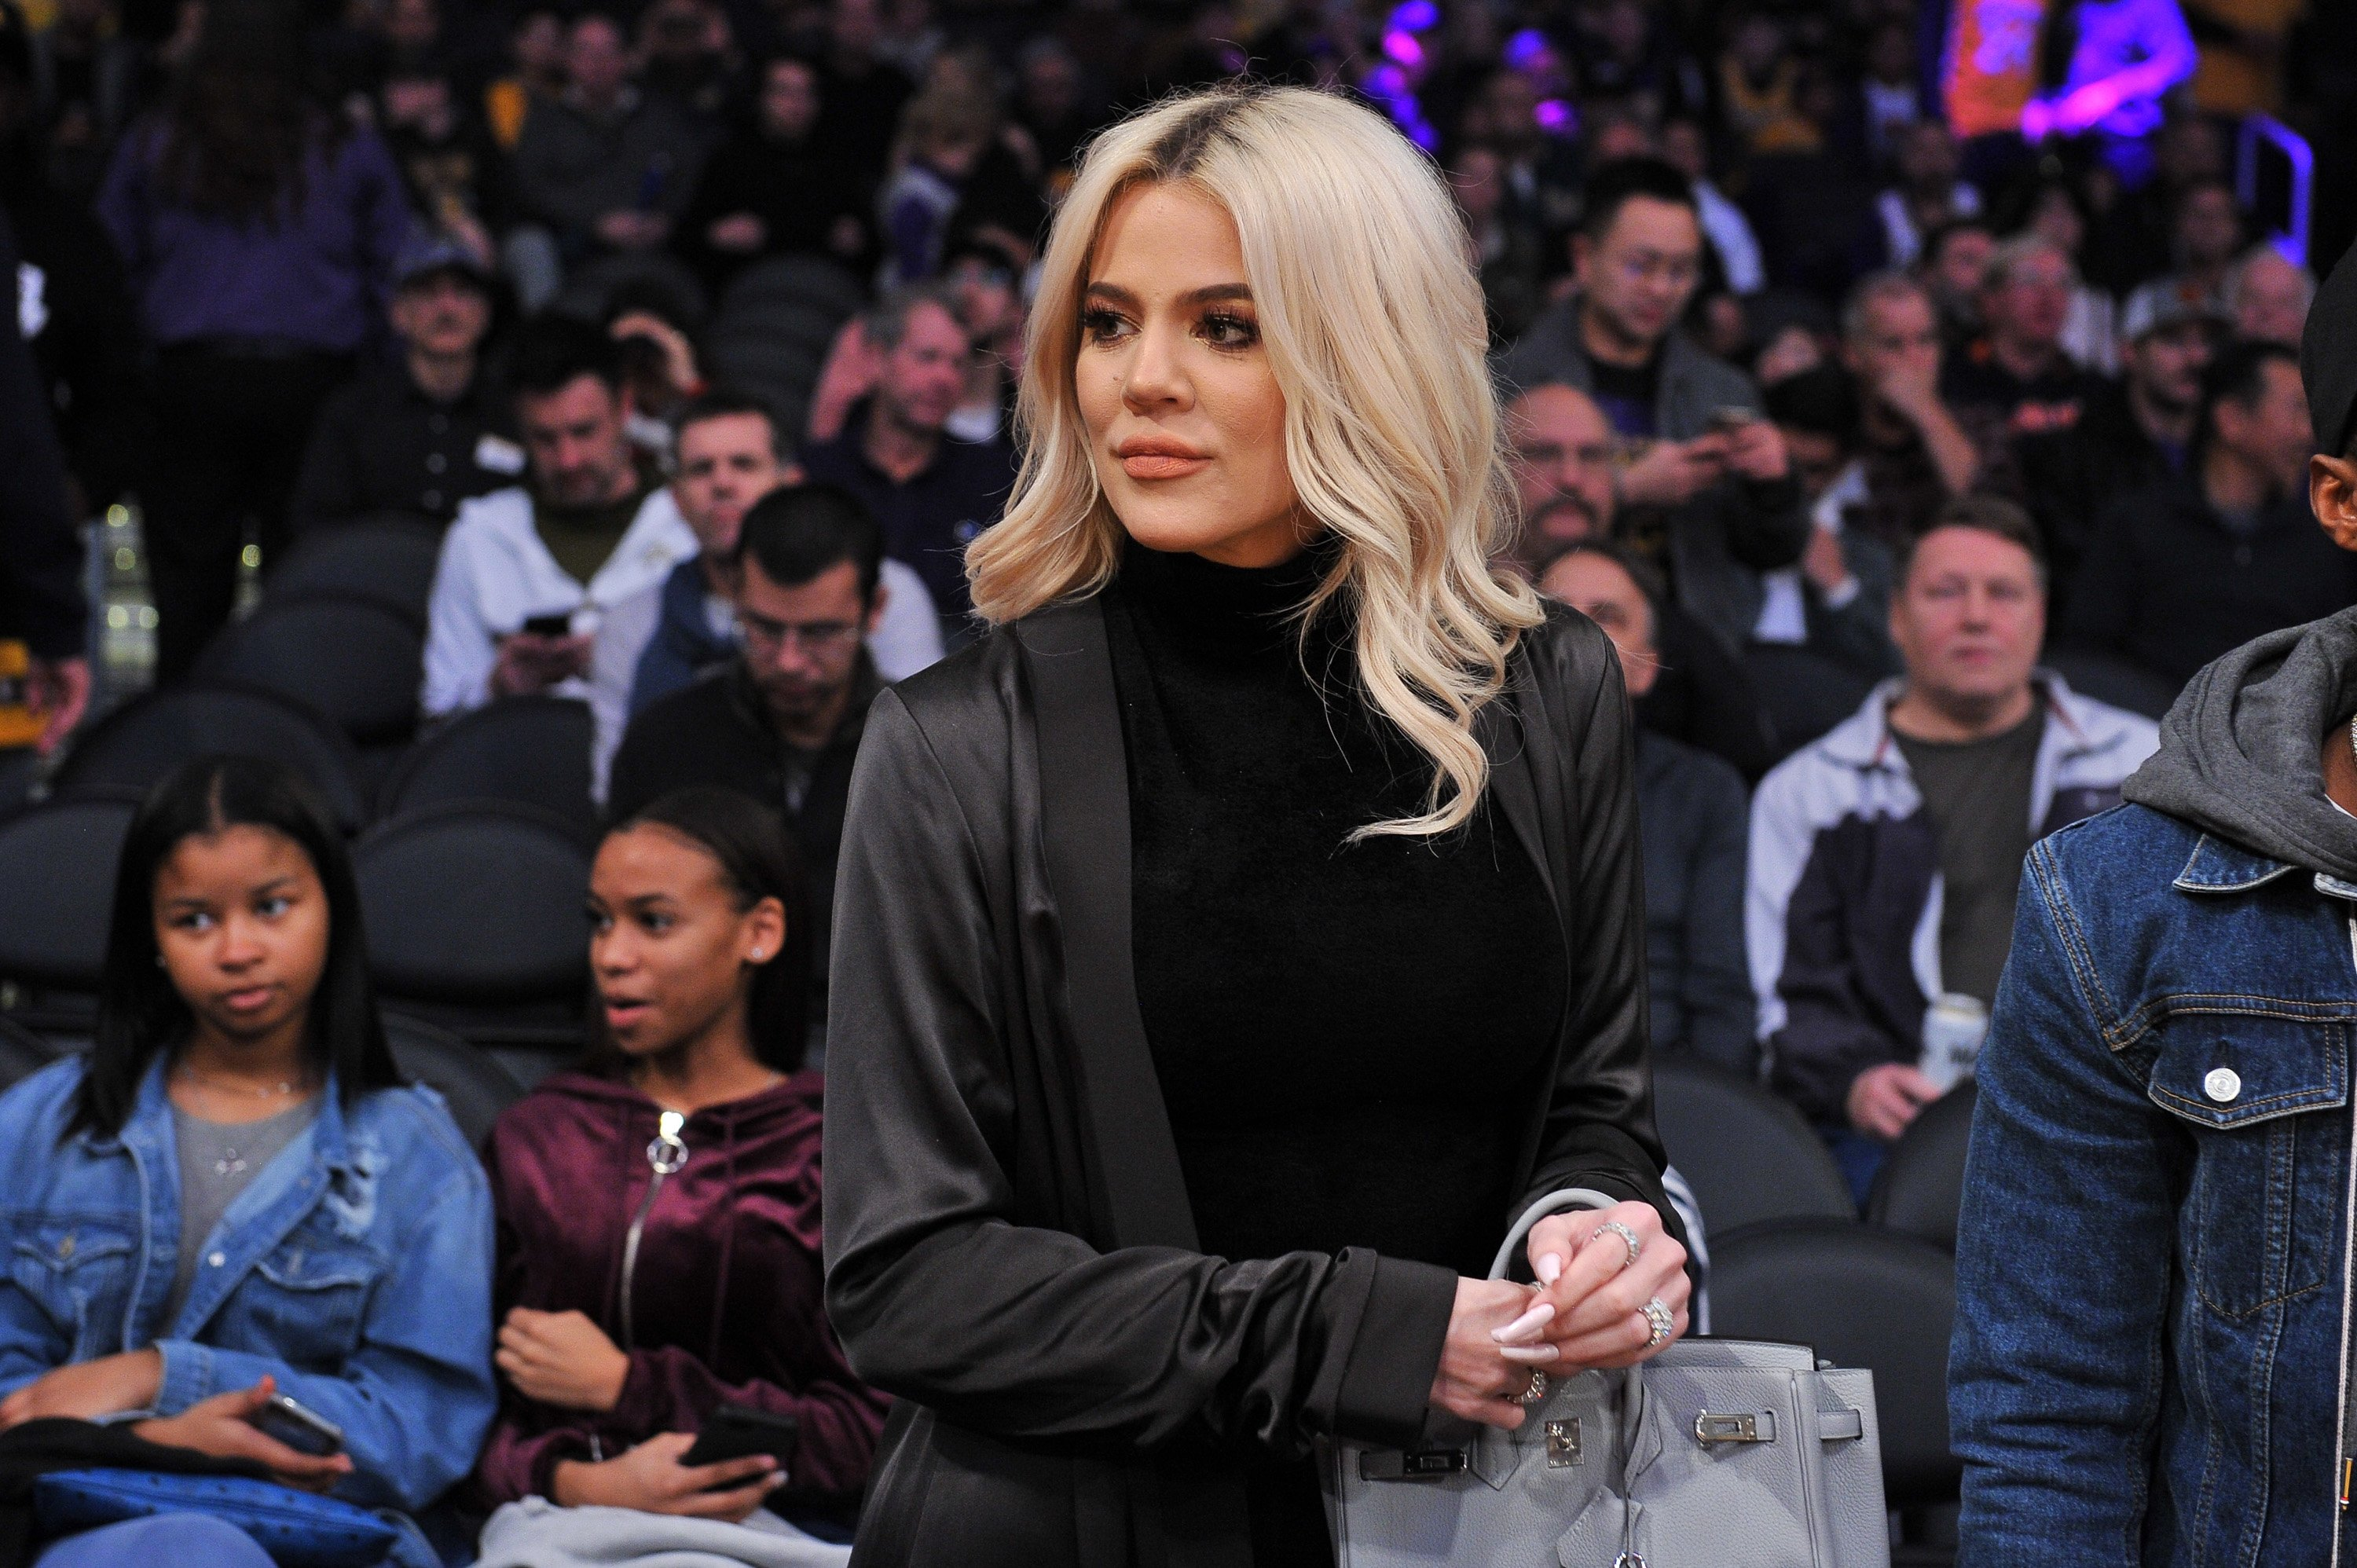 Khloe Kardashian at a basketball game between the Los Angeles Lakers and the Cleveland Cavaliers on January 13, 2019, in California | Photo: Getty Images